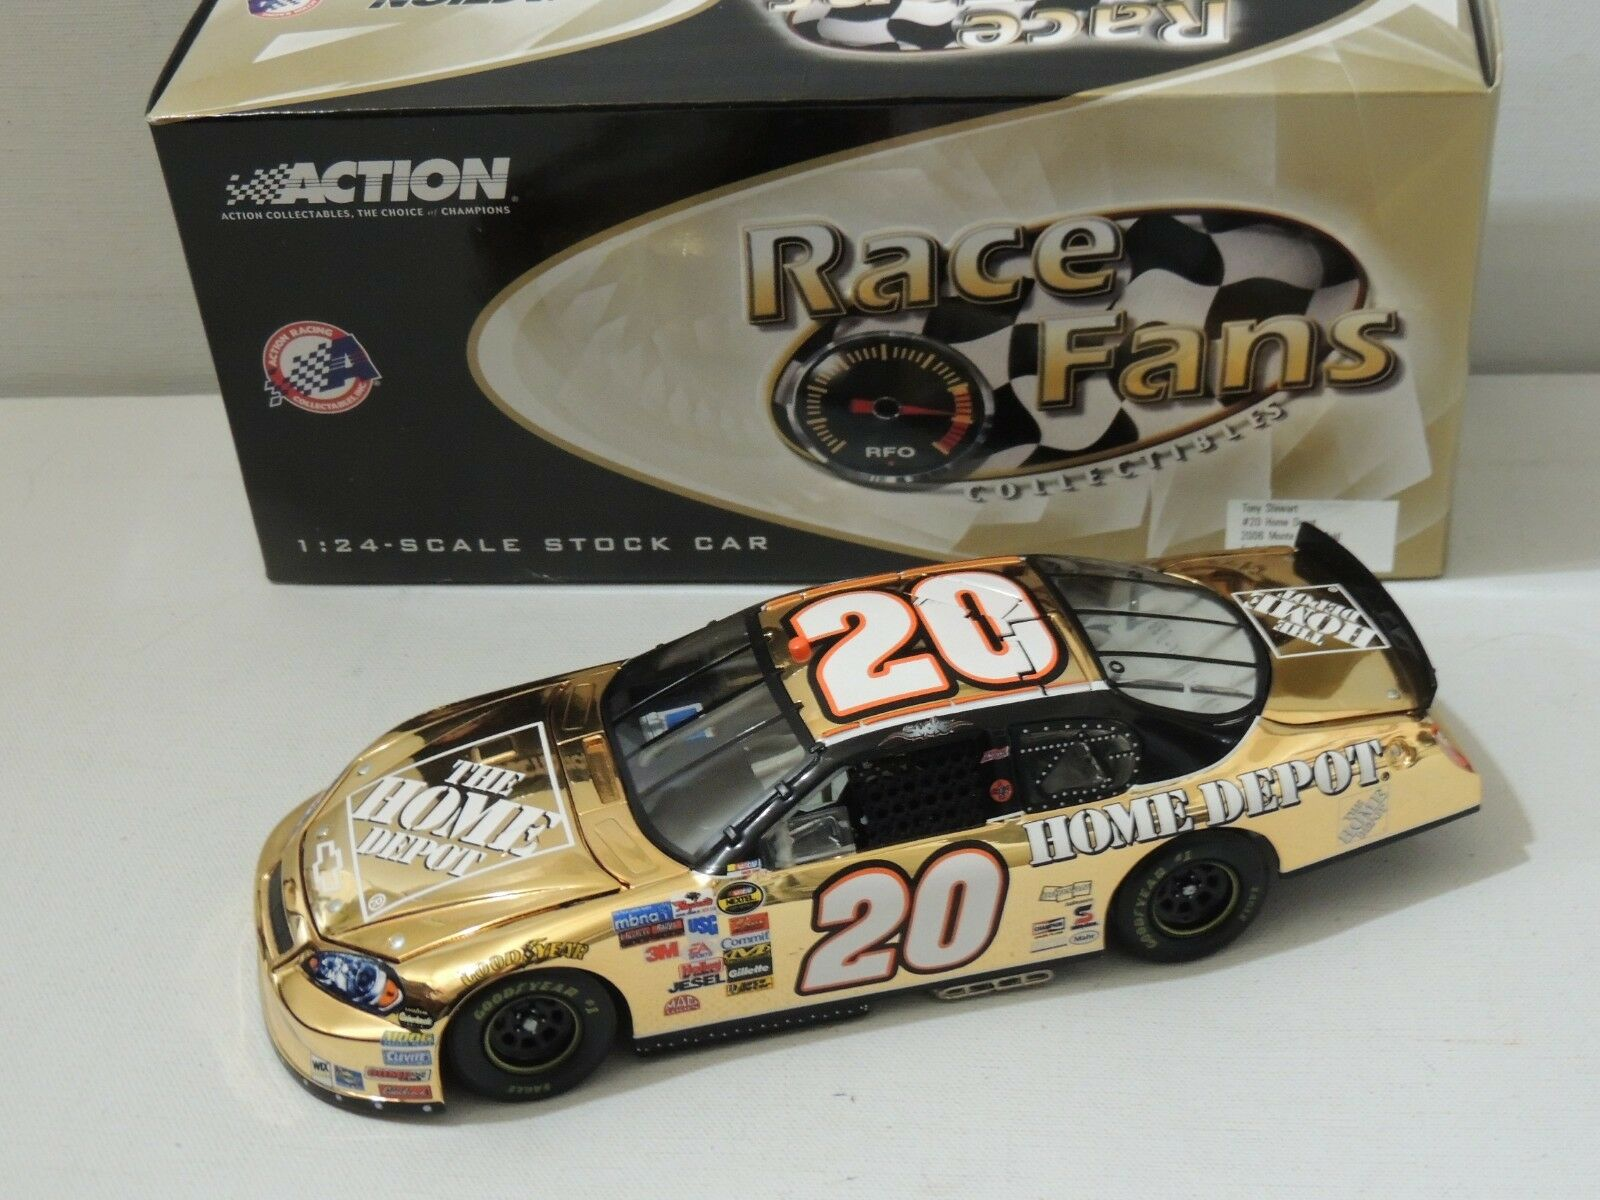 ACTION COLLECTIBLES 1 24 SCALETONY STEWART 2006 MONTE MONTE MONTE CARLO gold 1 OF 108 f23bbf